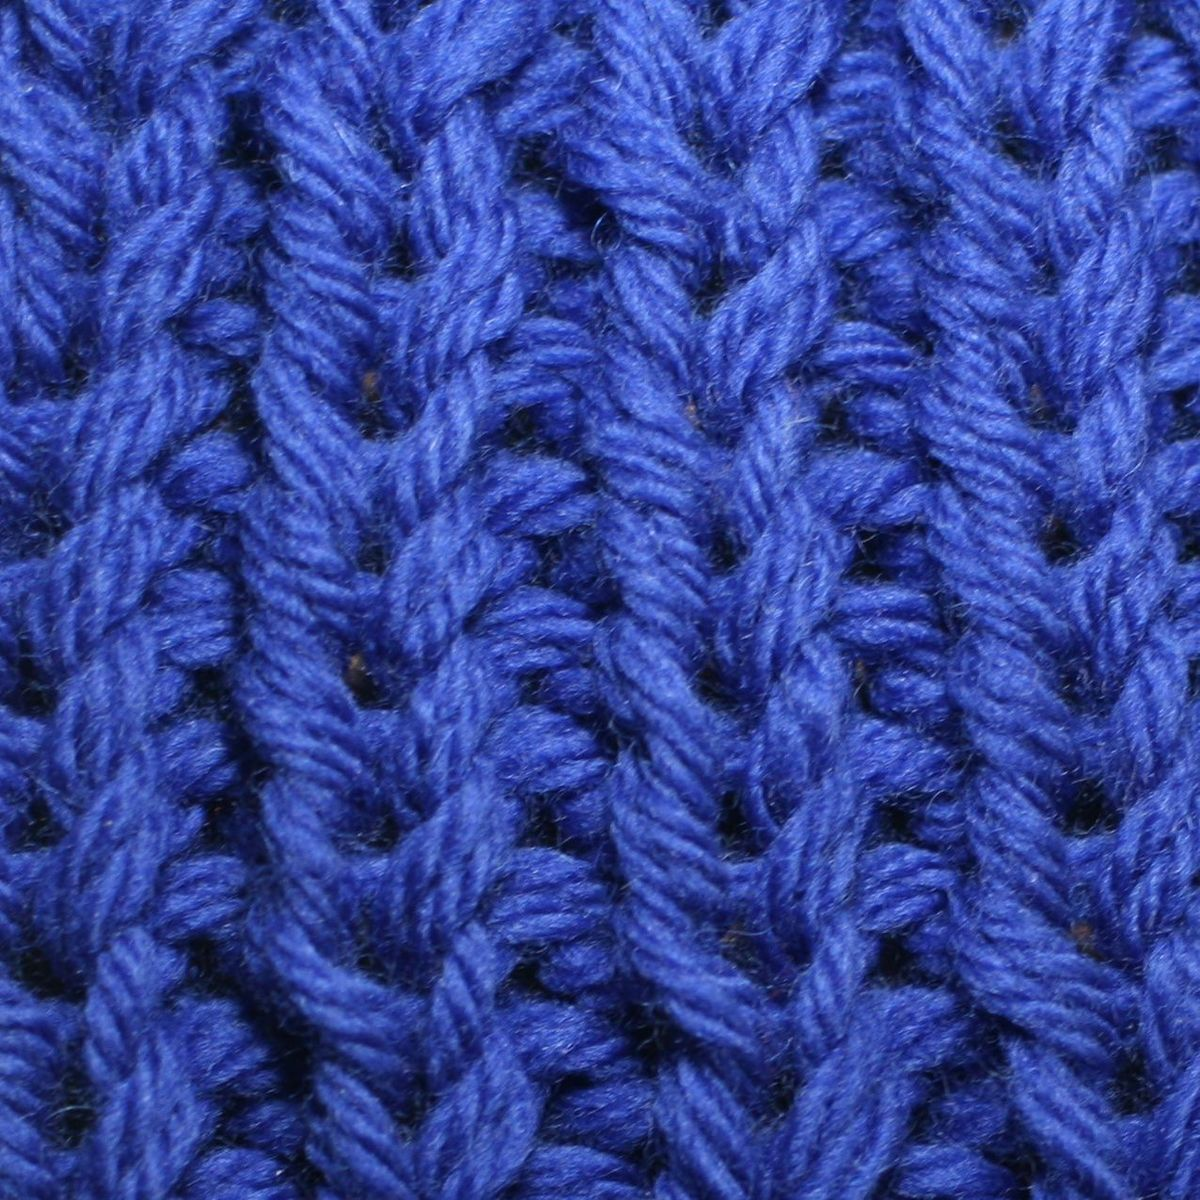 Knitting Rib Stitches : Ribbing knitting wikipedia